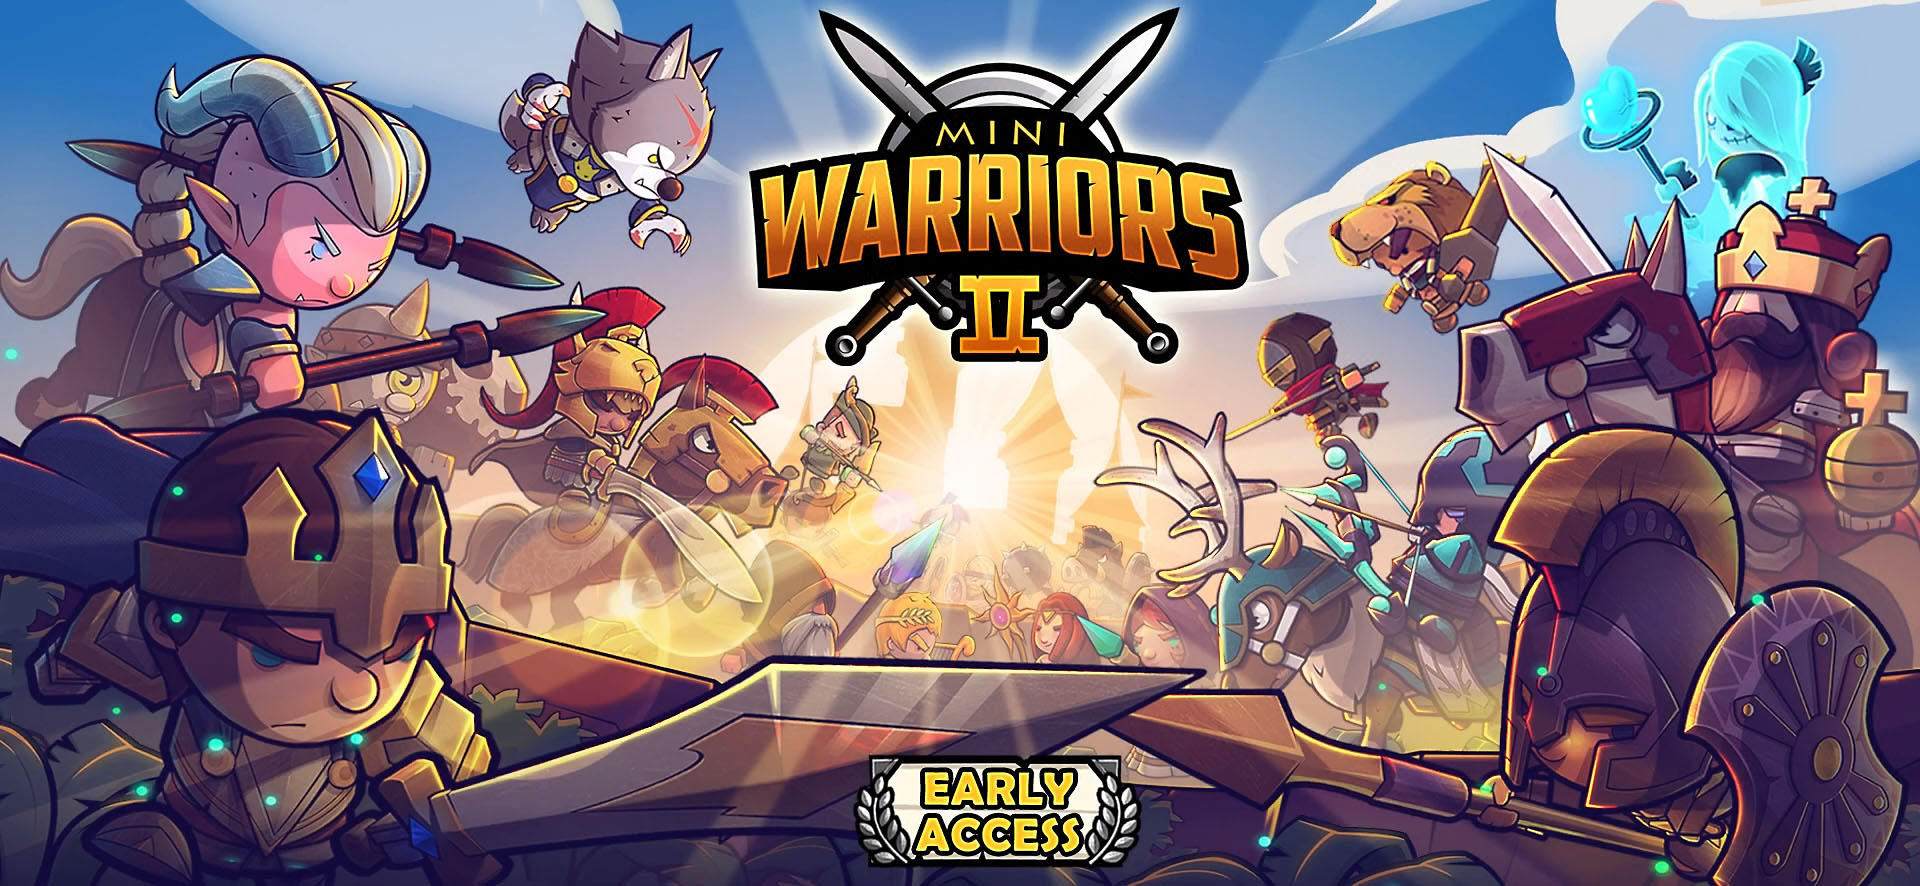 Mini Warriors 2 - Idle Arena for Android